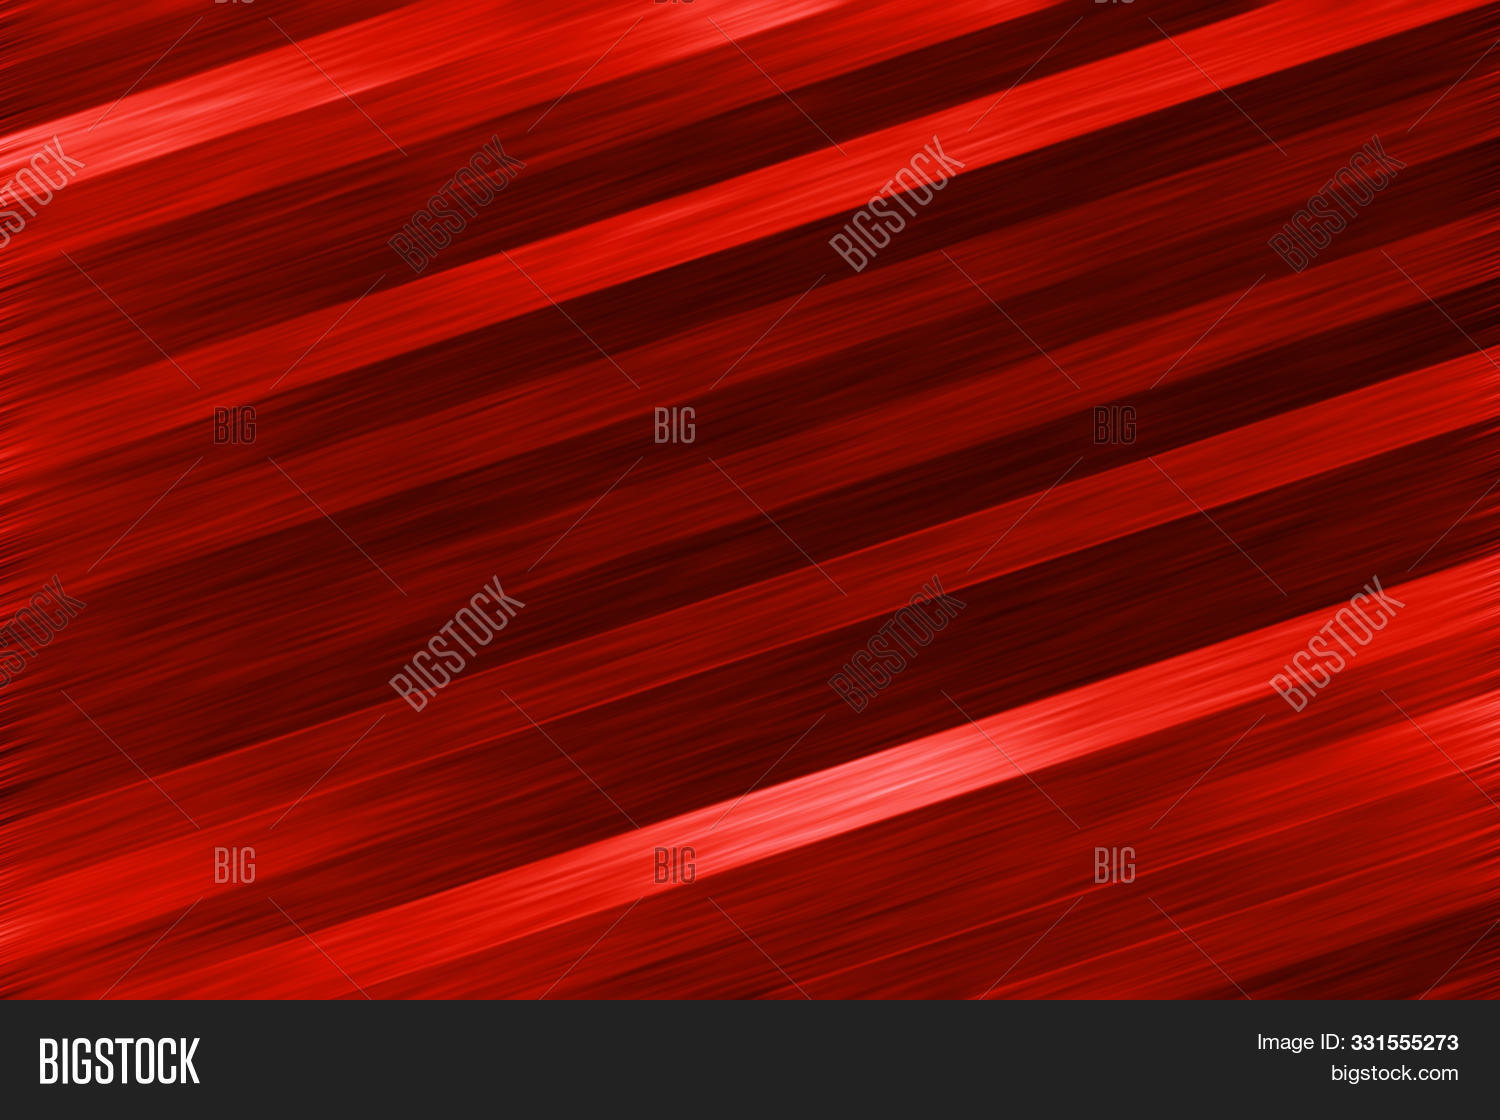 abstract,anniversary,background,banner,black,blur,blurred,bright,brochure,christmas,color,defocused,design,elegant,fancy,foil,glamorous,glamour,glitz,glitzy,gradient,heaven,light,luxury,metal,metallic,motion,old,orange,paint,paper,poster,red,rich,shine,shiny,sidebar,soft,speed,sun,sunshine,template,texture,vintage,wall,warm,web,website,wedding,wrapping